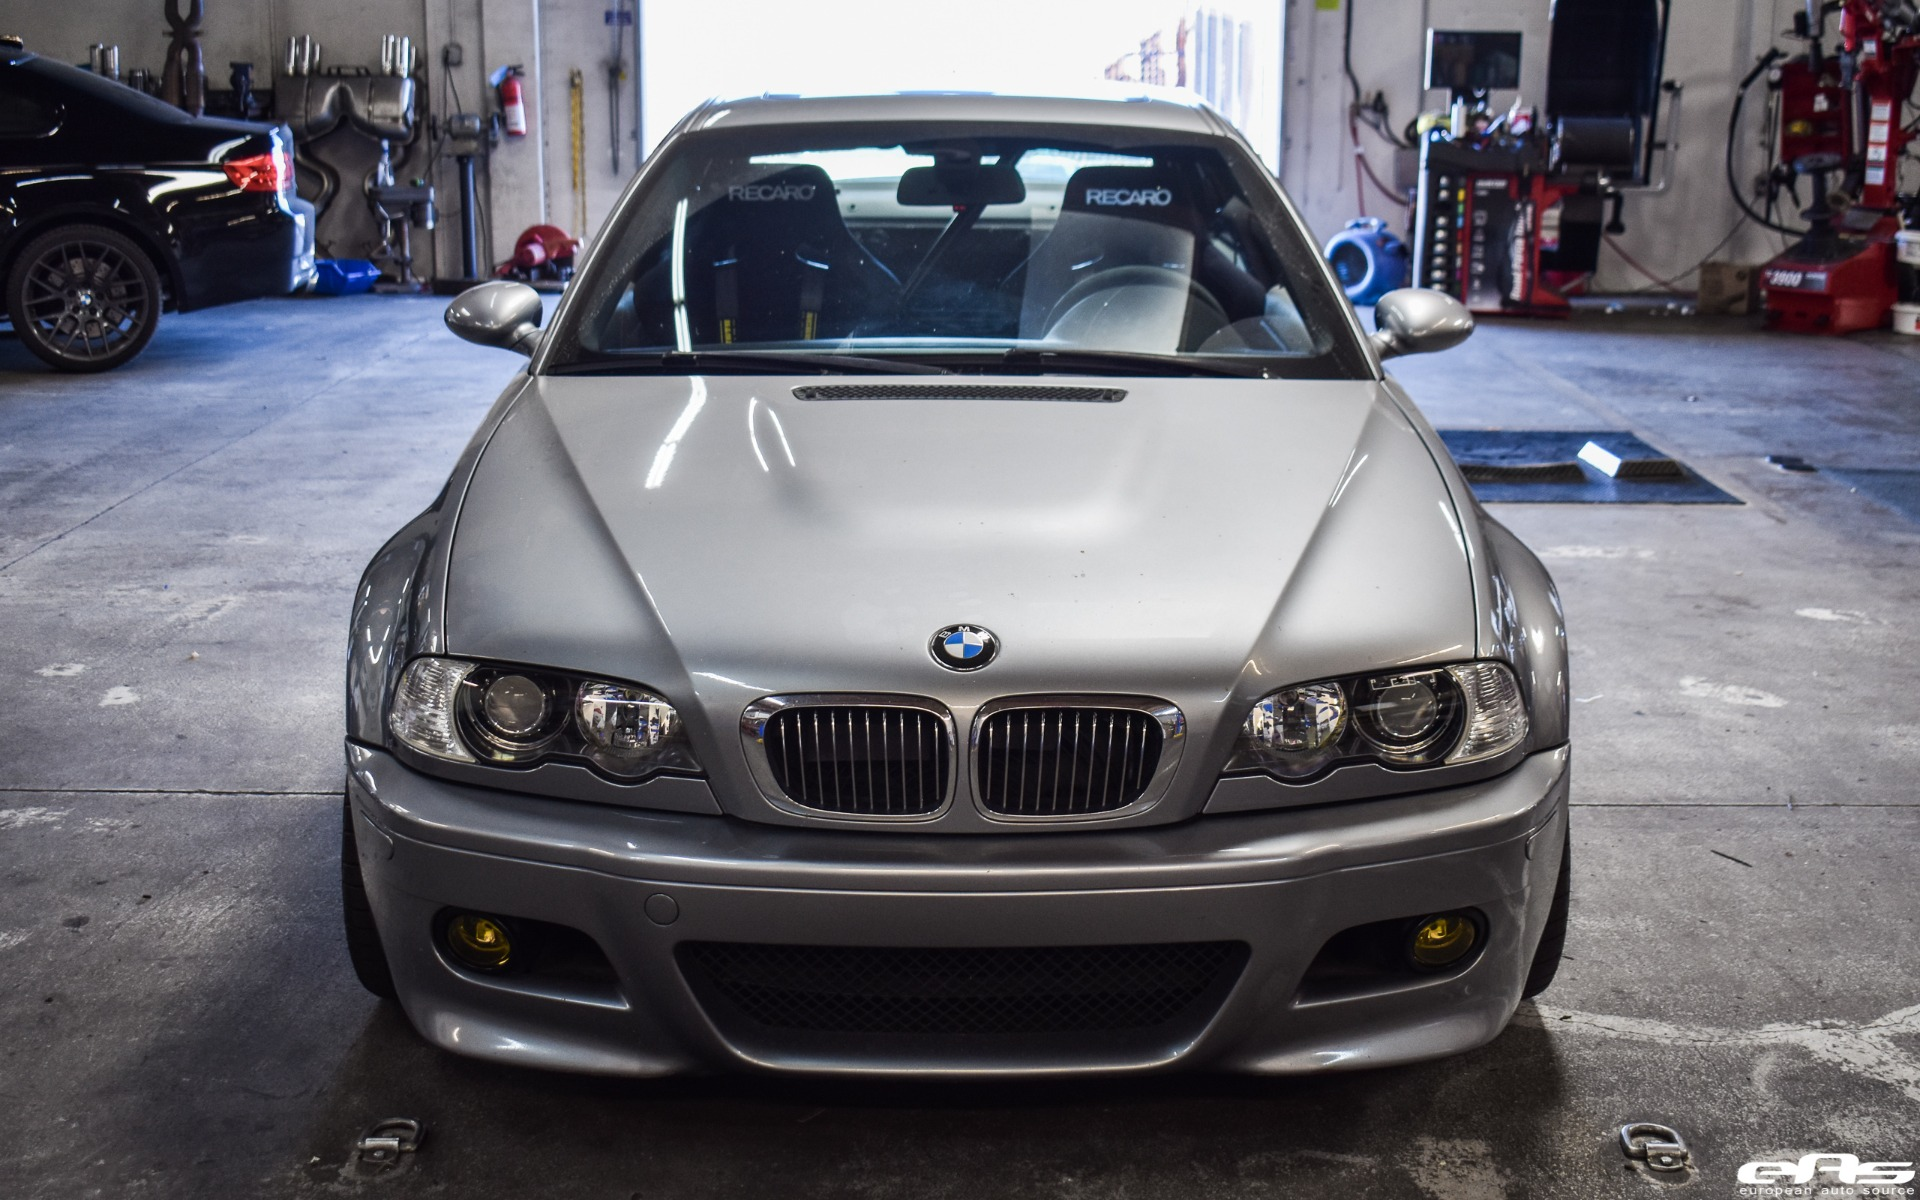 Beautiful Silver Gray Bmw E46 M3 Gets Aftermarket Tuning Parts